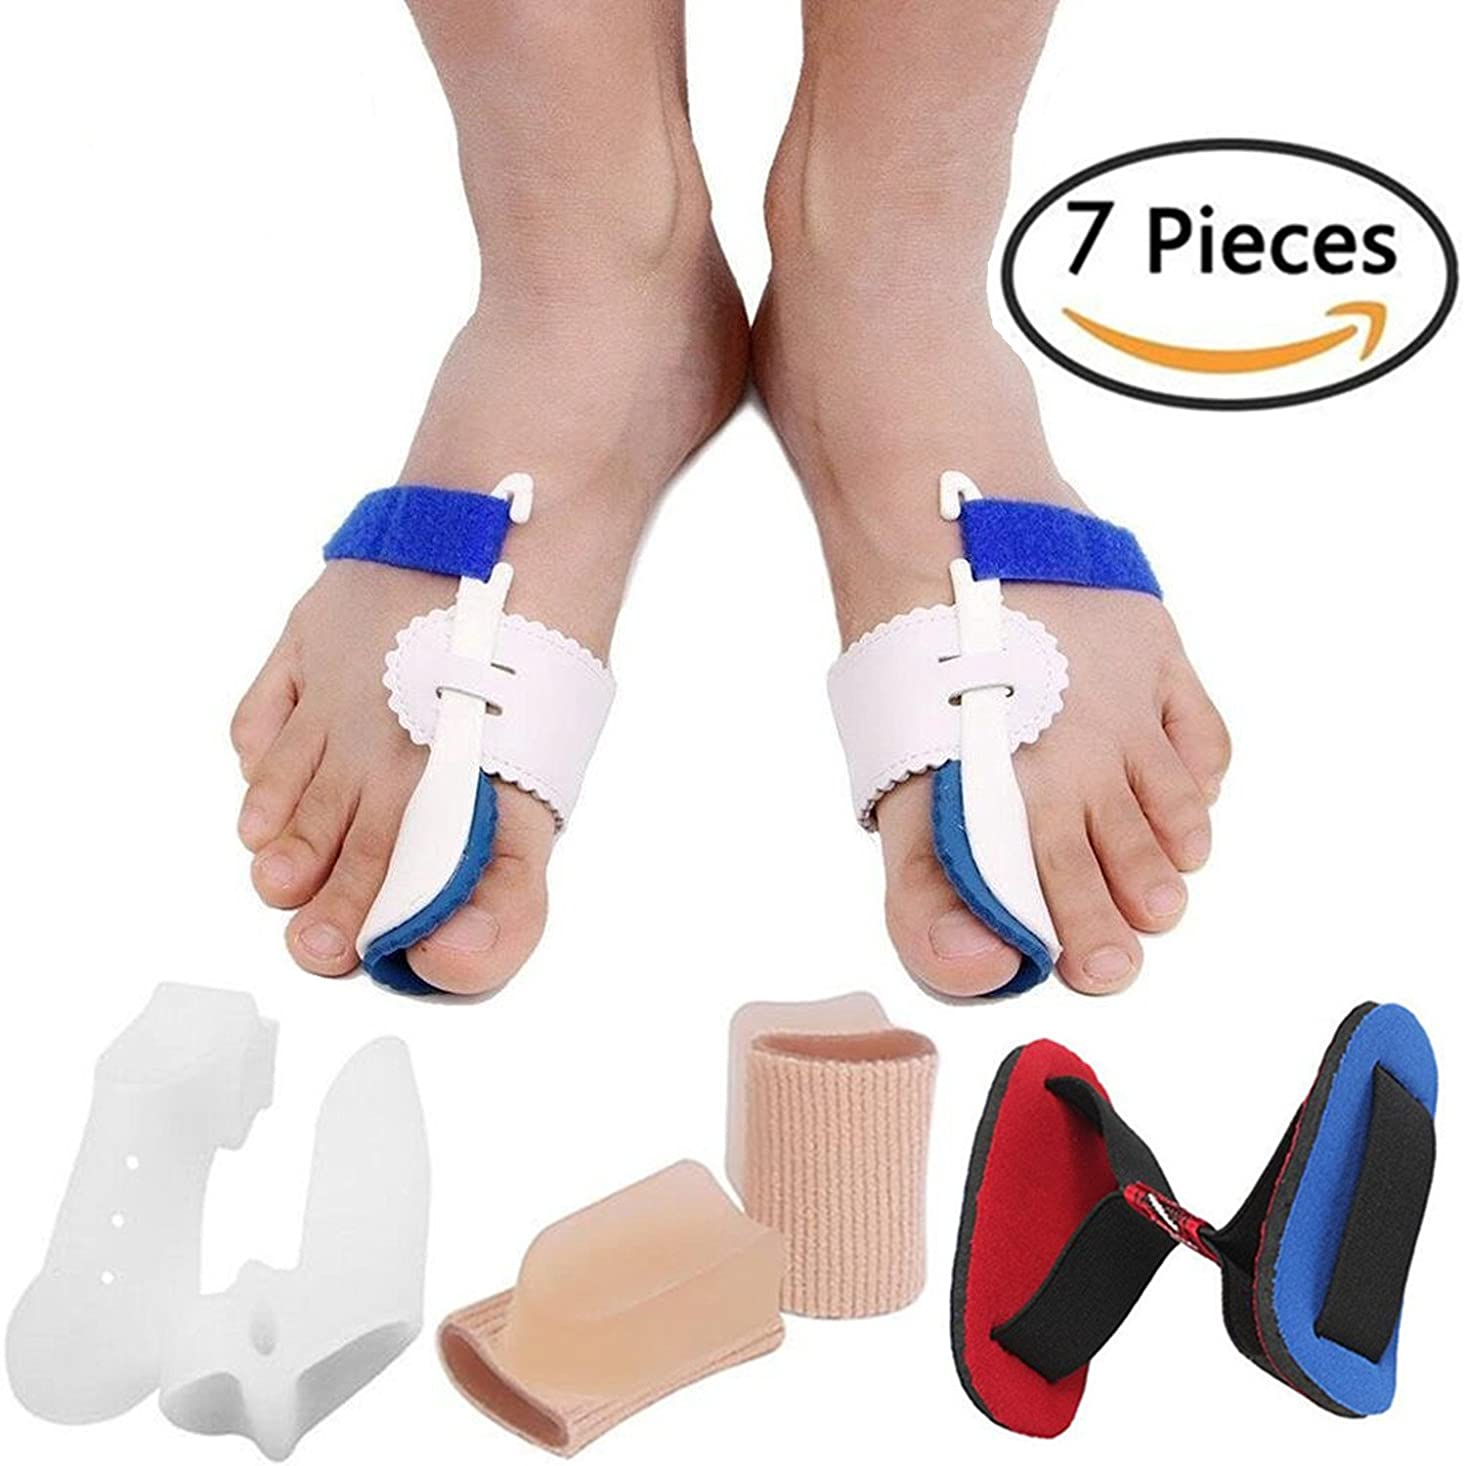 規制要旨警察Bunion Corrector Bunion Relief Protector Sleeves Kit, Big Toe Corrector Straightener Separator Treat Pain in Hallux Valgus, Big Toe Joint, Hammer Toe, Splint Aid Surgery Treatment